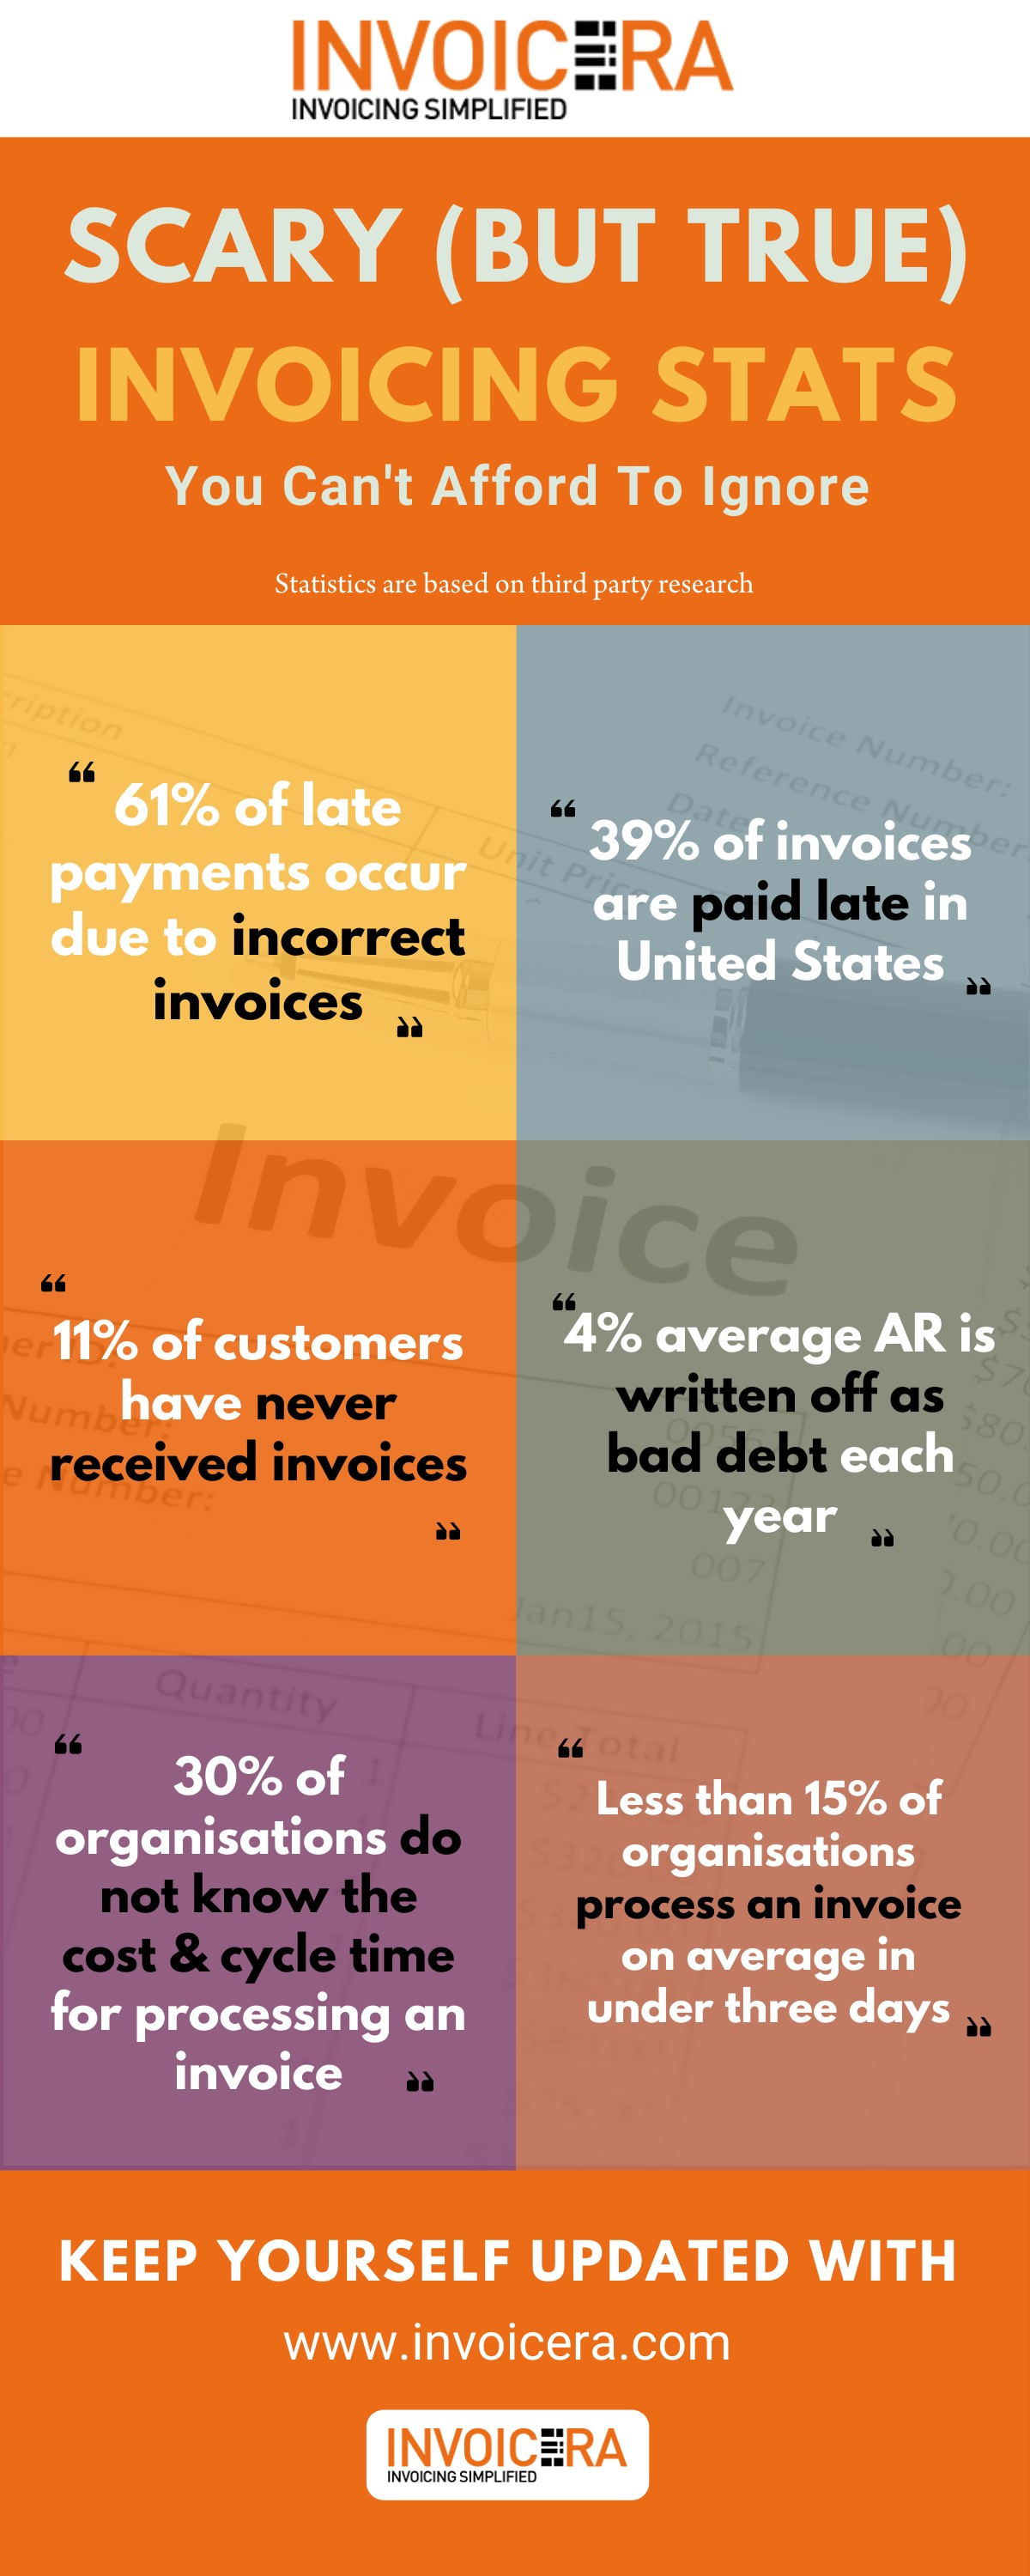 Scary Invoicing Stats You Shouldn't Ignore